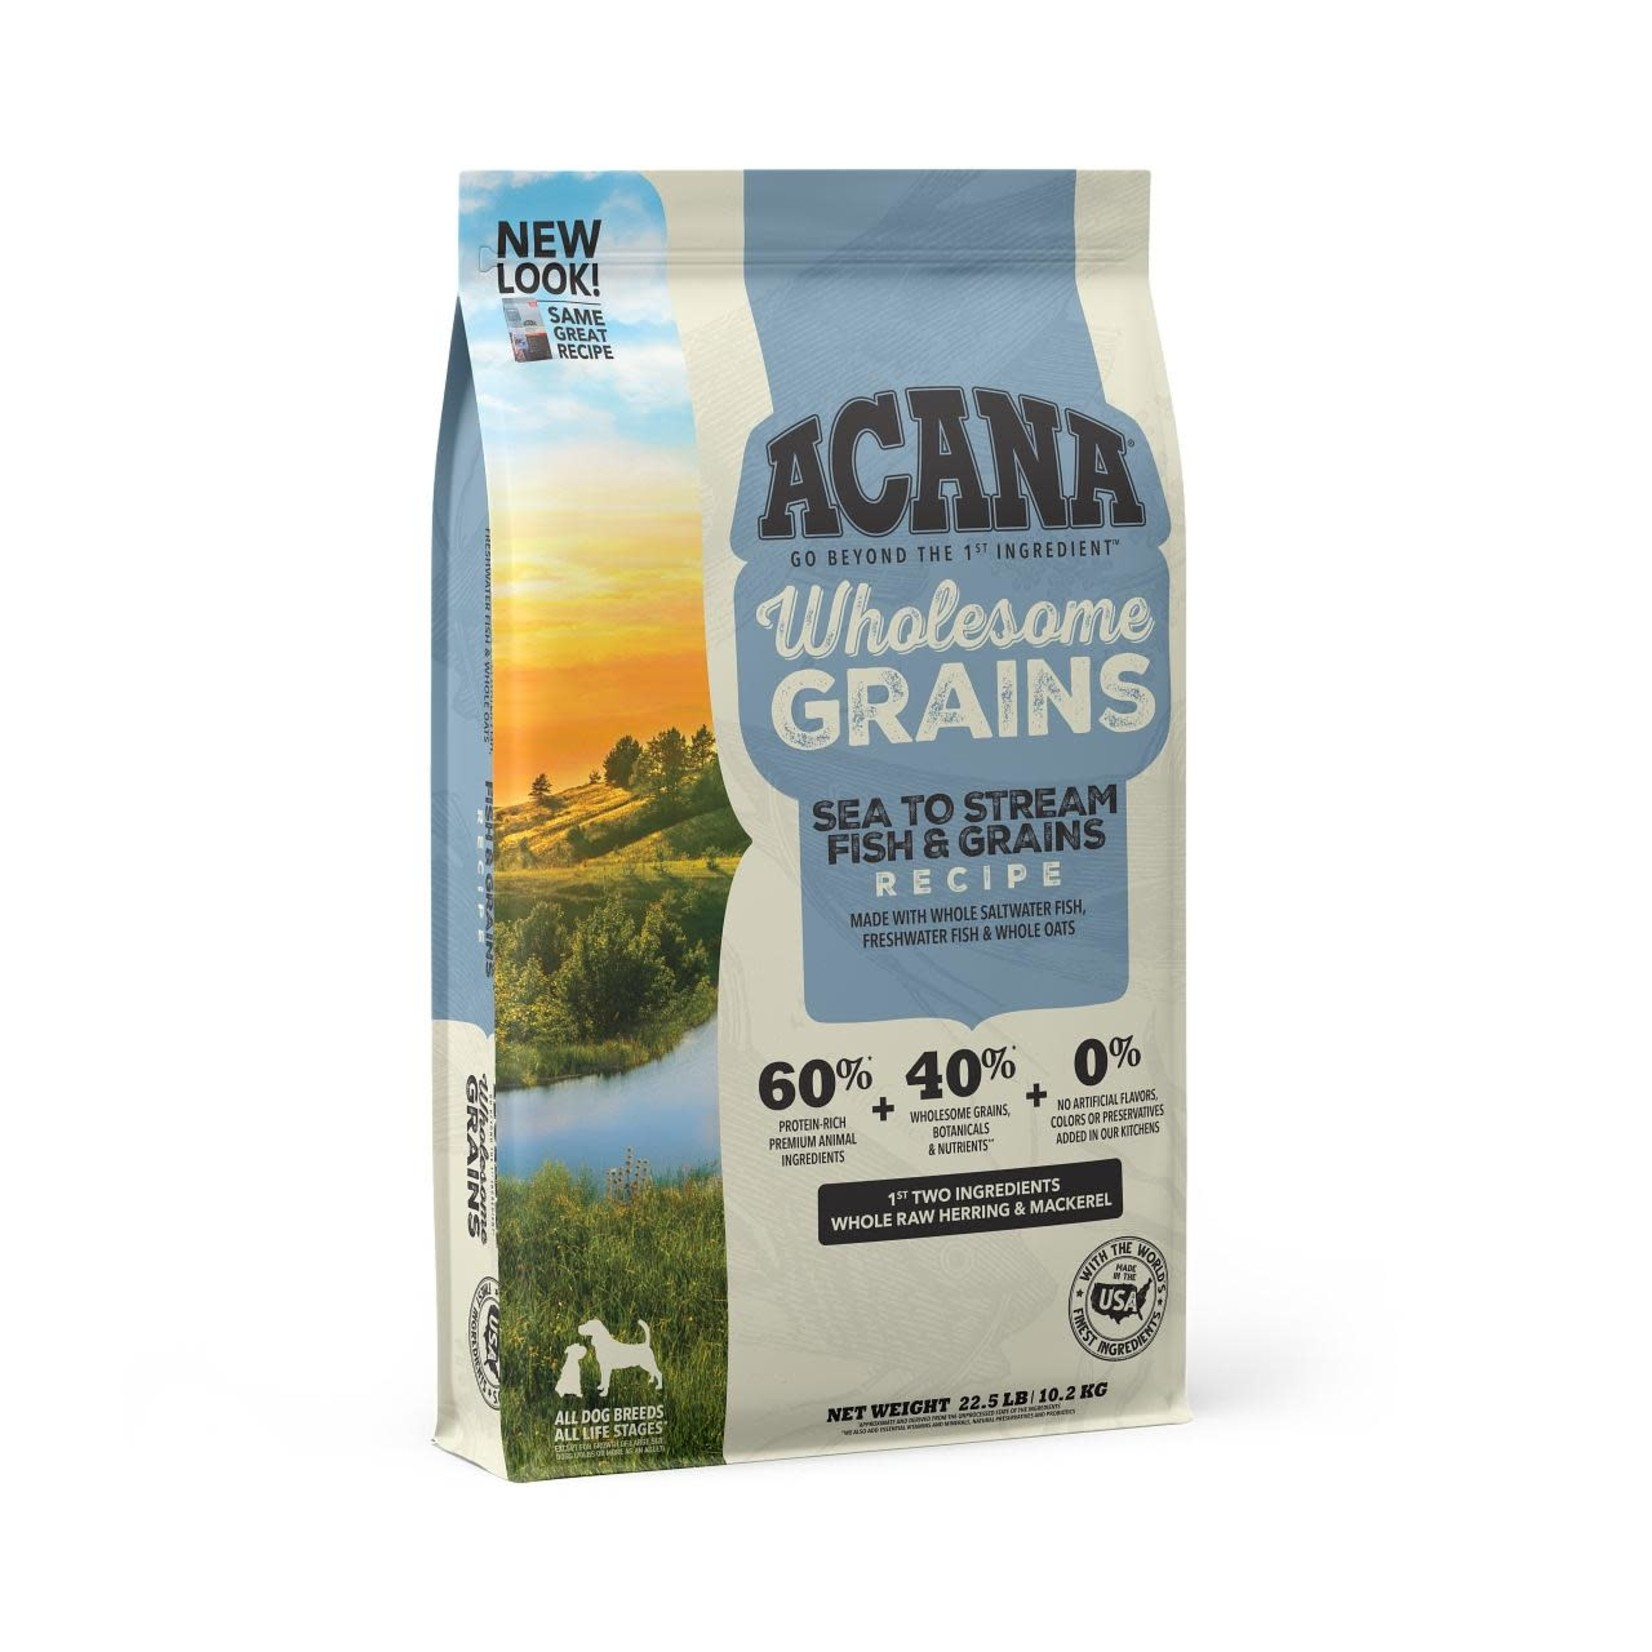 Champion Pet Foods Acana Dog Wholesome Grains Sea To Stream 22.5#